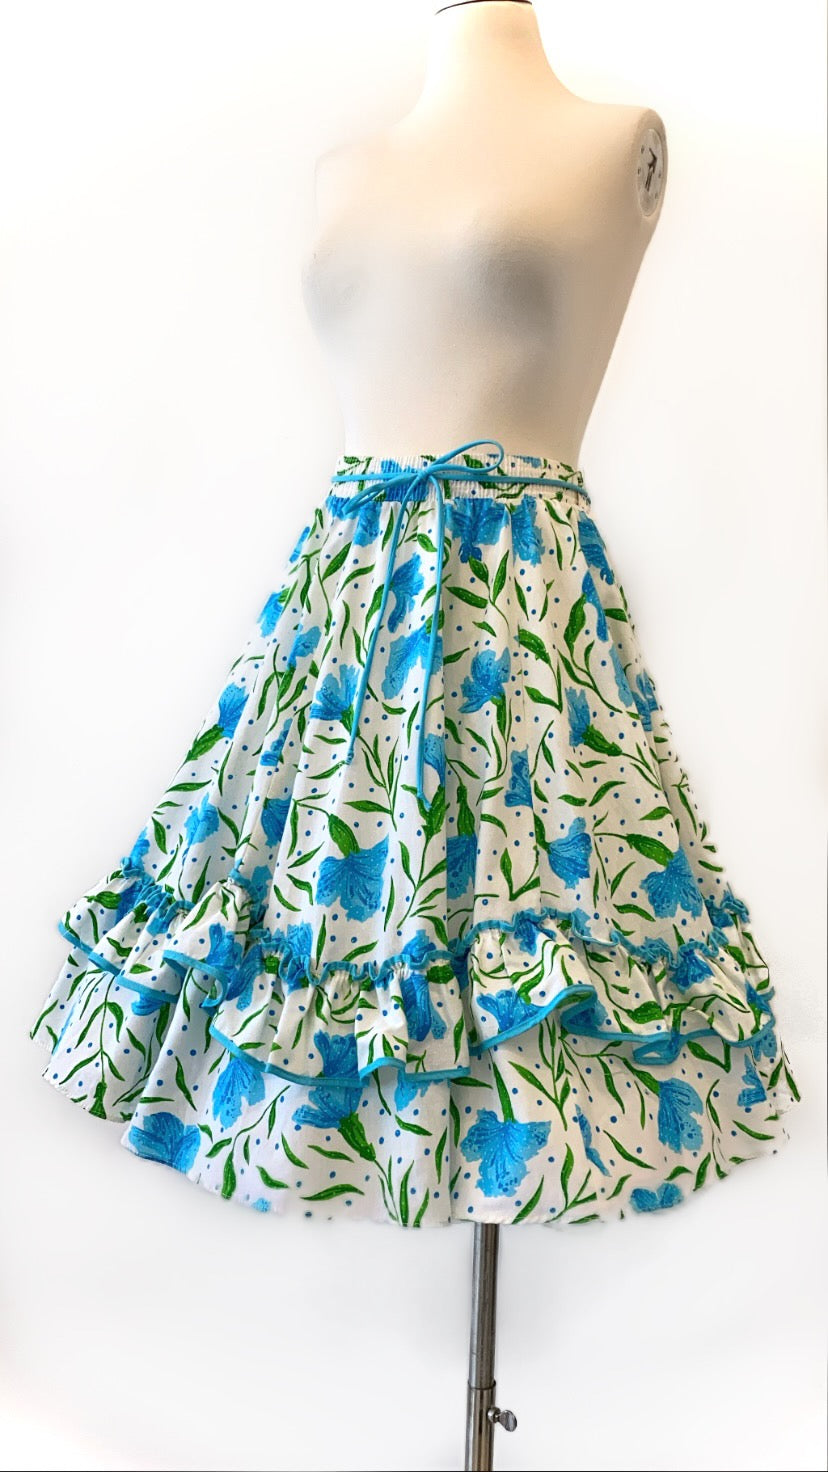 Vintage - Floral Print Ruffle Skirt with Rope Tie